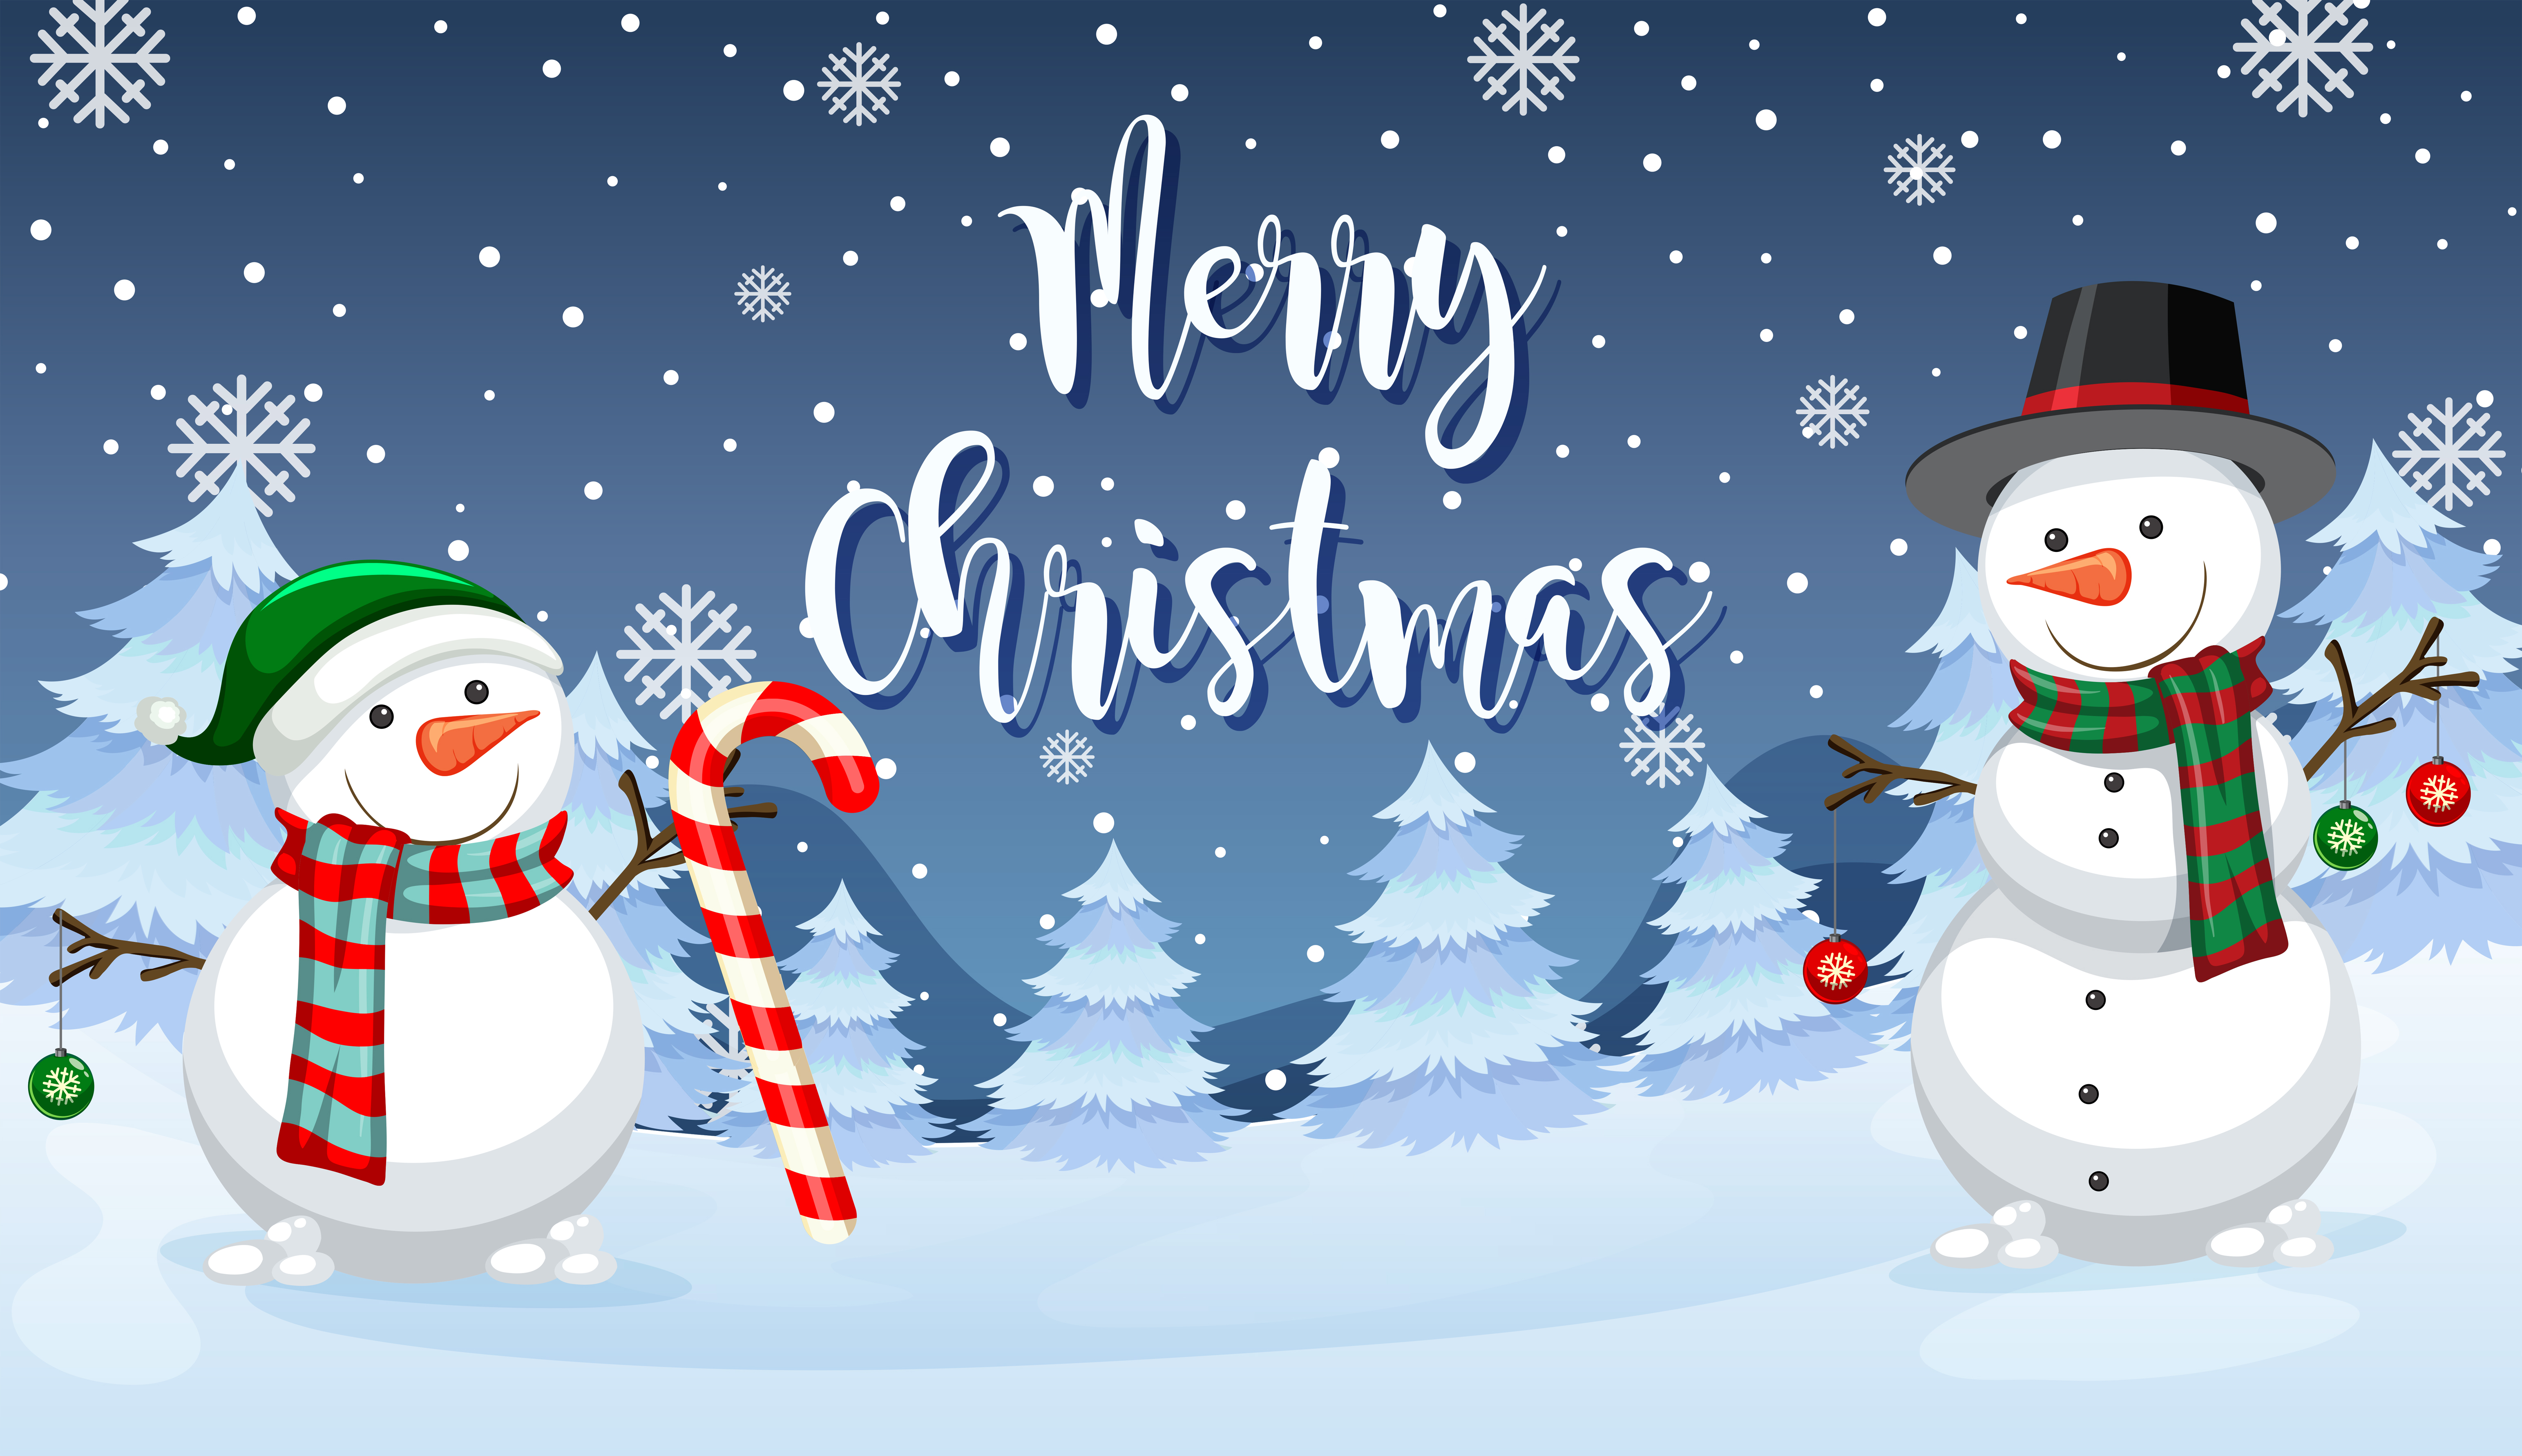 Merry Christmas snowman card - Download Free Vectors ...